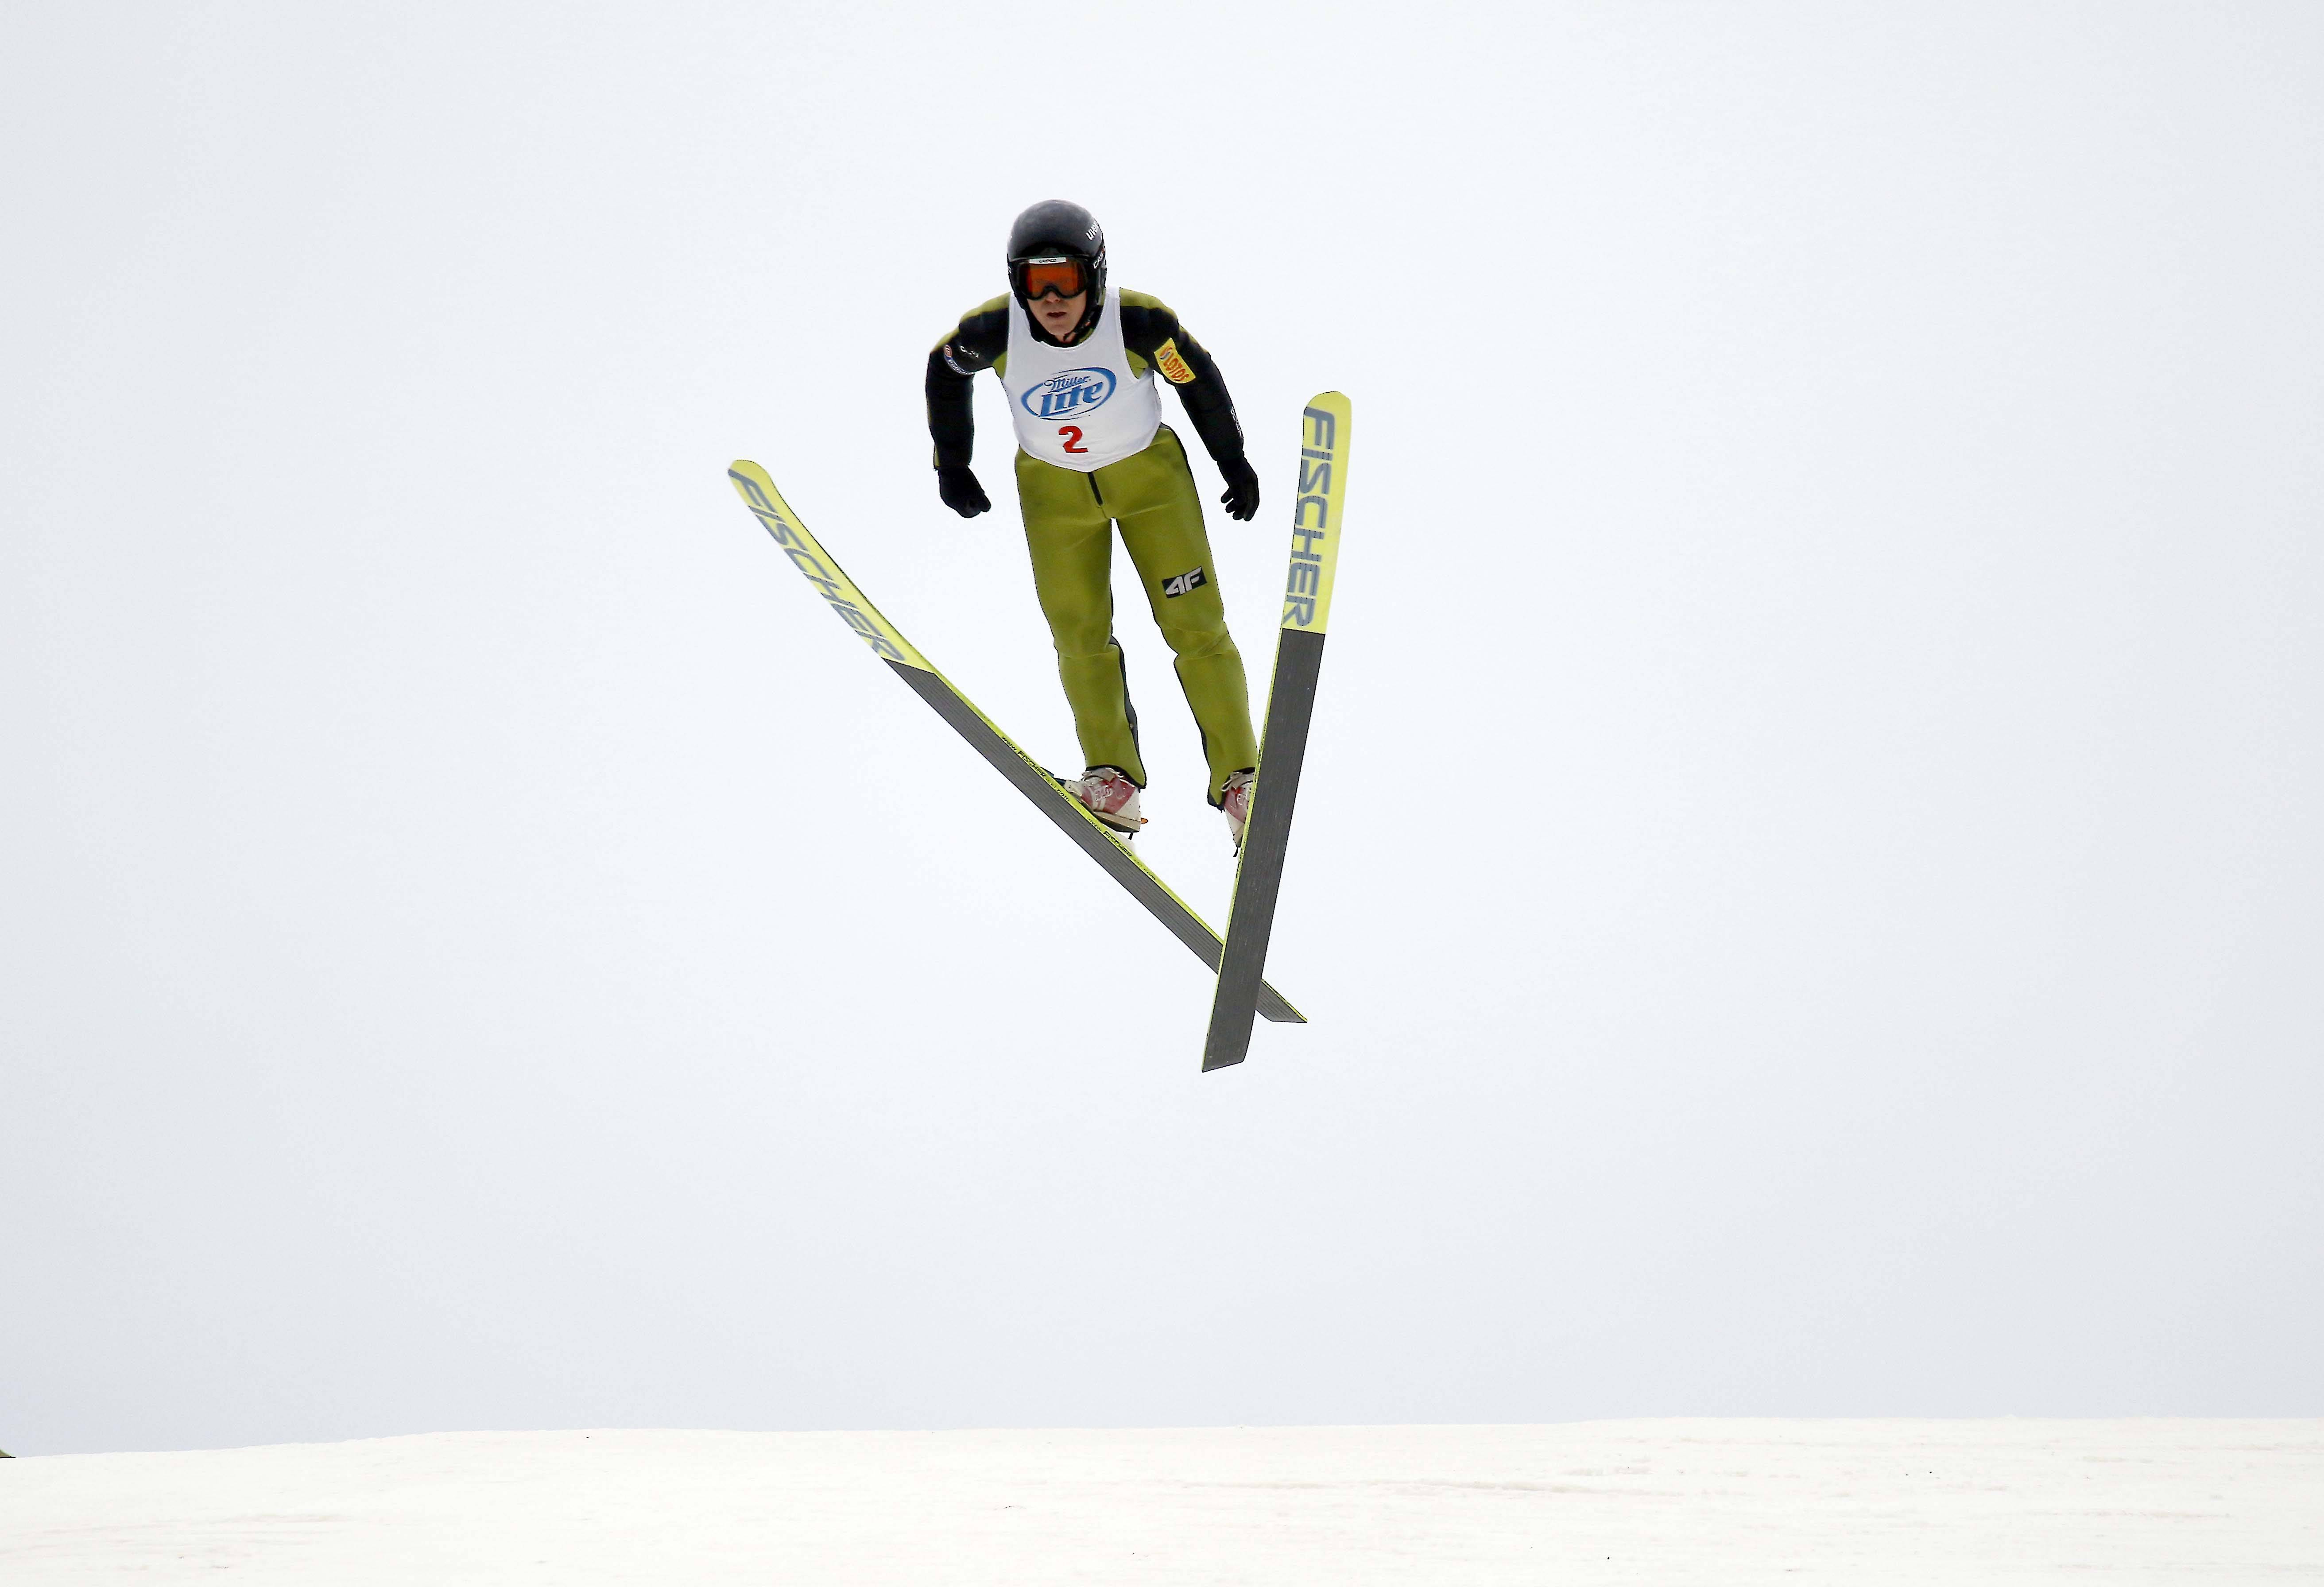 Brian Hill/bhill@dailyherald.comWally Kvak of the Norge Ski Club launches himself from the big hill Saturday during the 112th International Winter Tournament at the Norge Ski Club in Fox River Grove.